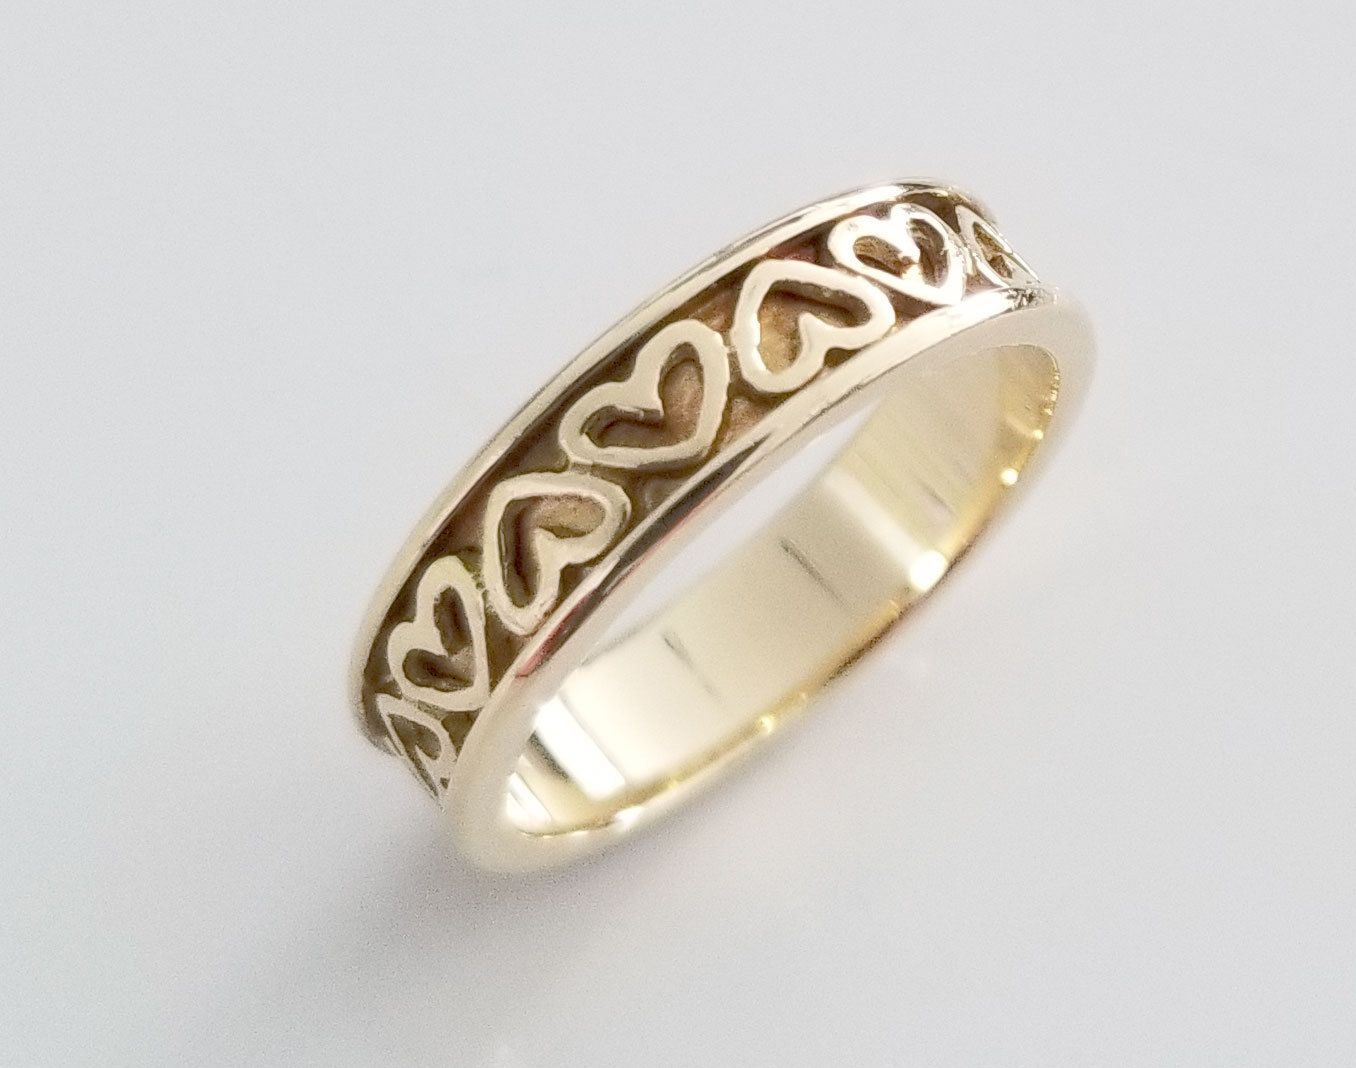 Genuine vintage tiffany k yellow gold eternity heart design ring